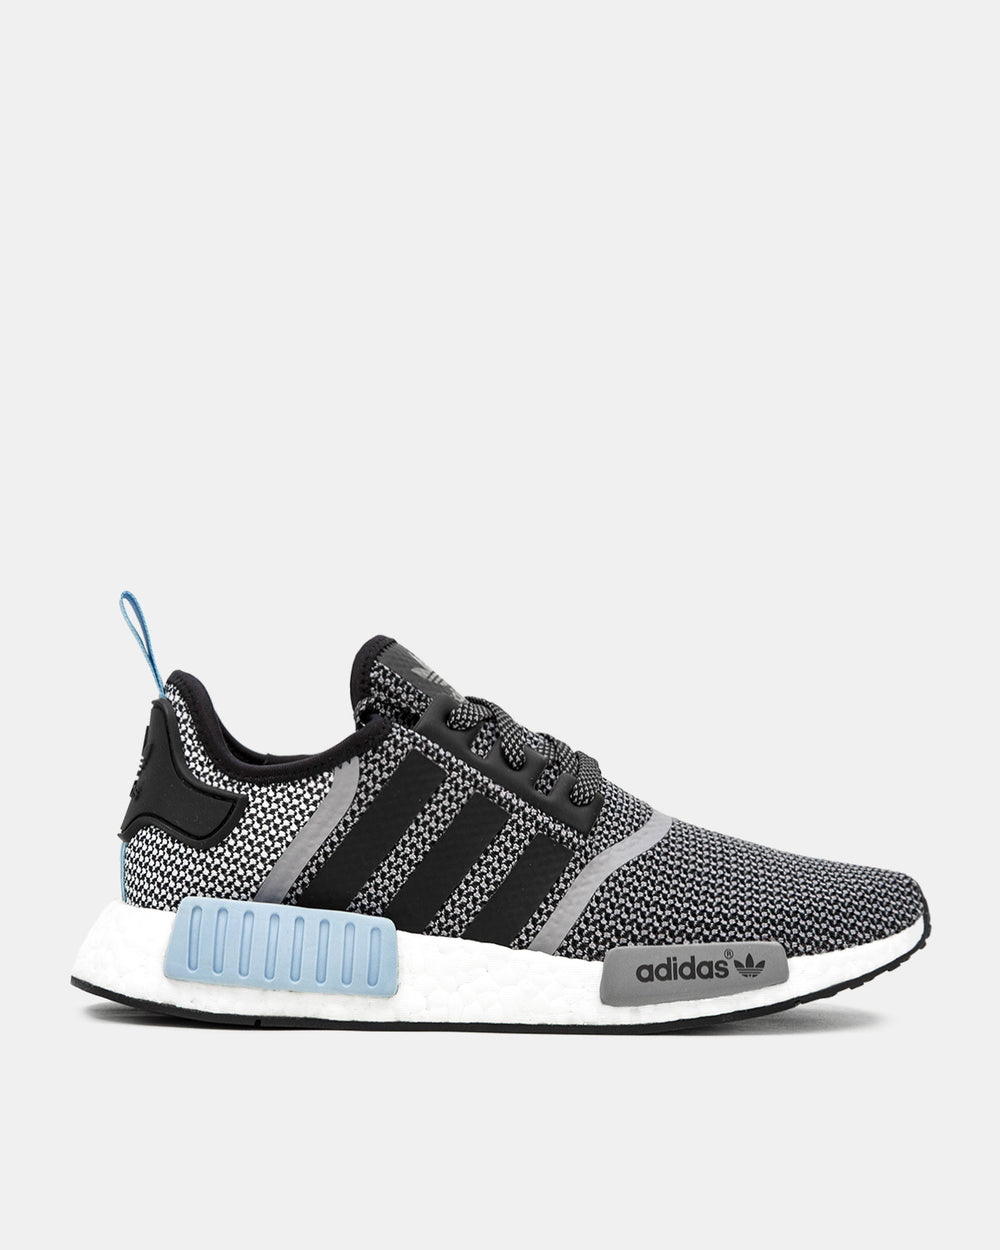 adidas - NMD R1 (Core Black | Clear Blue)